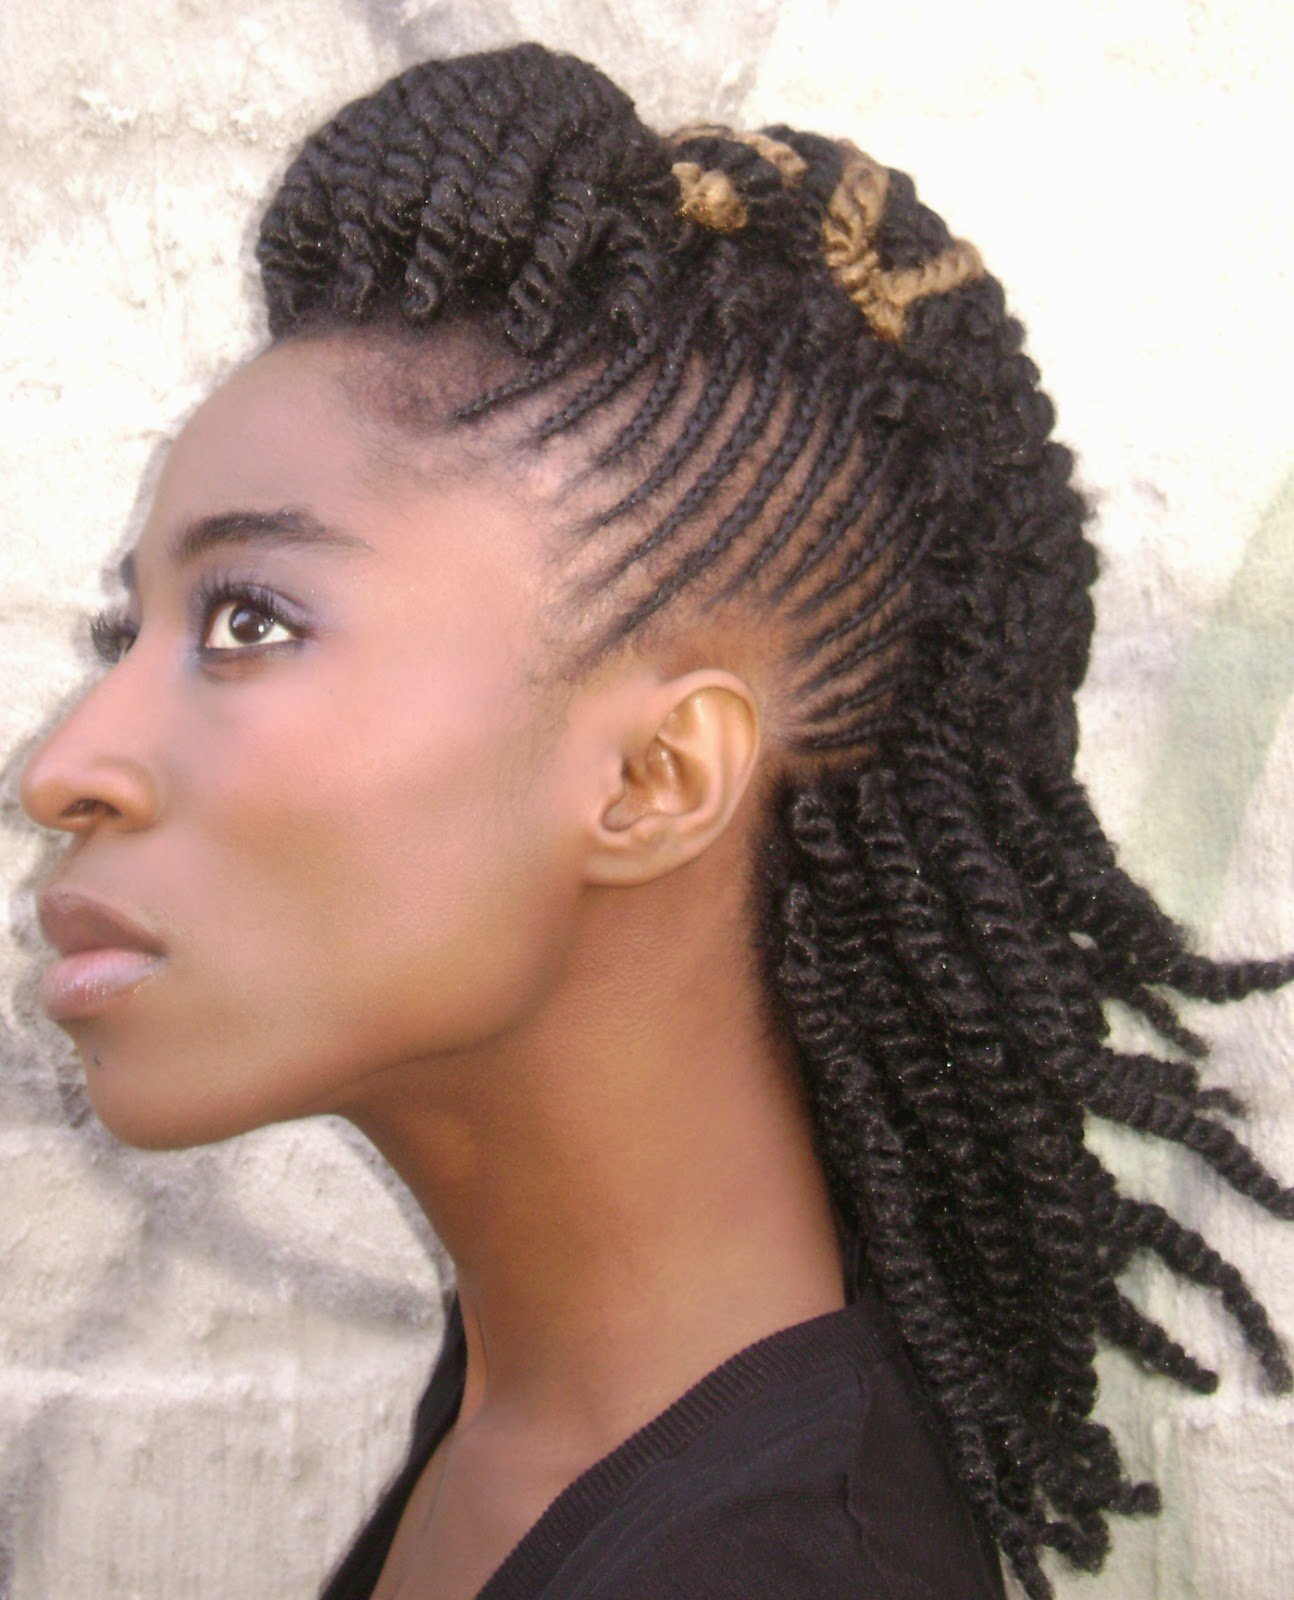 Free Top 18 2014 Africa America Updo Braids Hairstyles Gallery Wallpaper